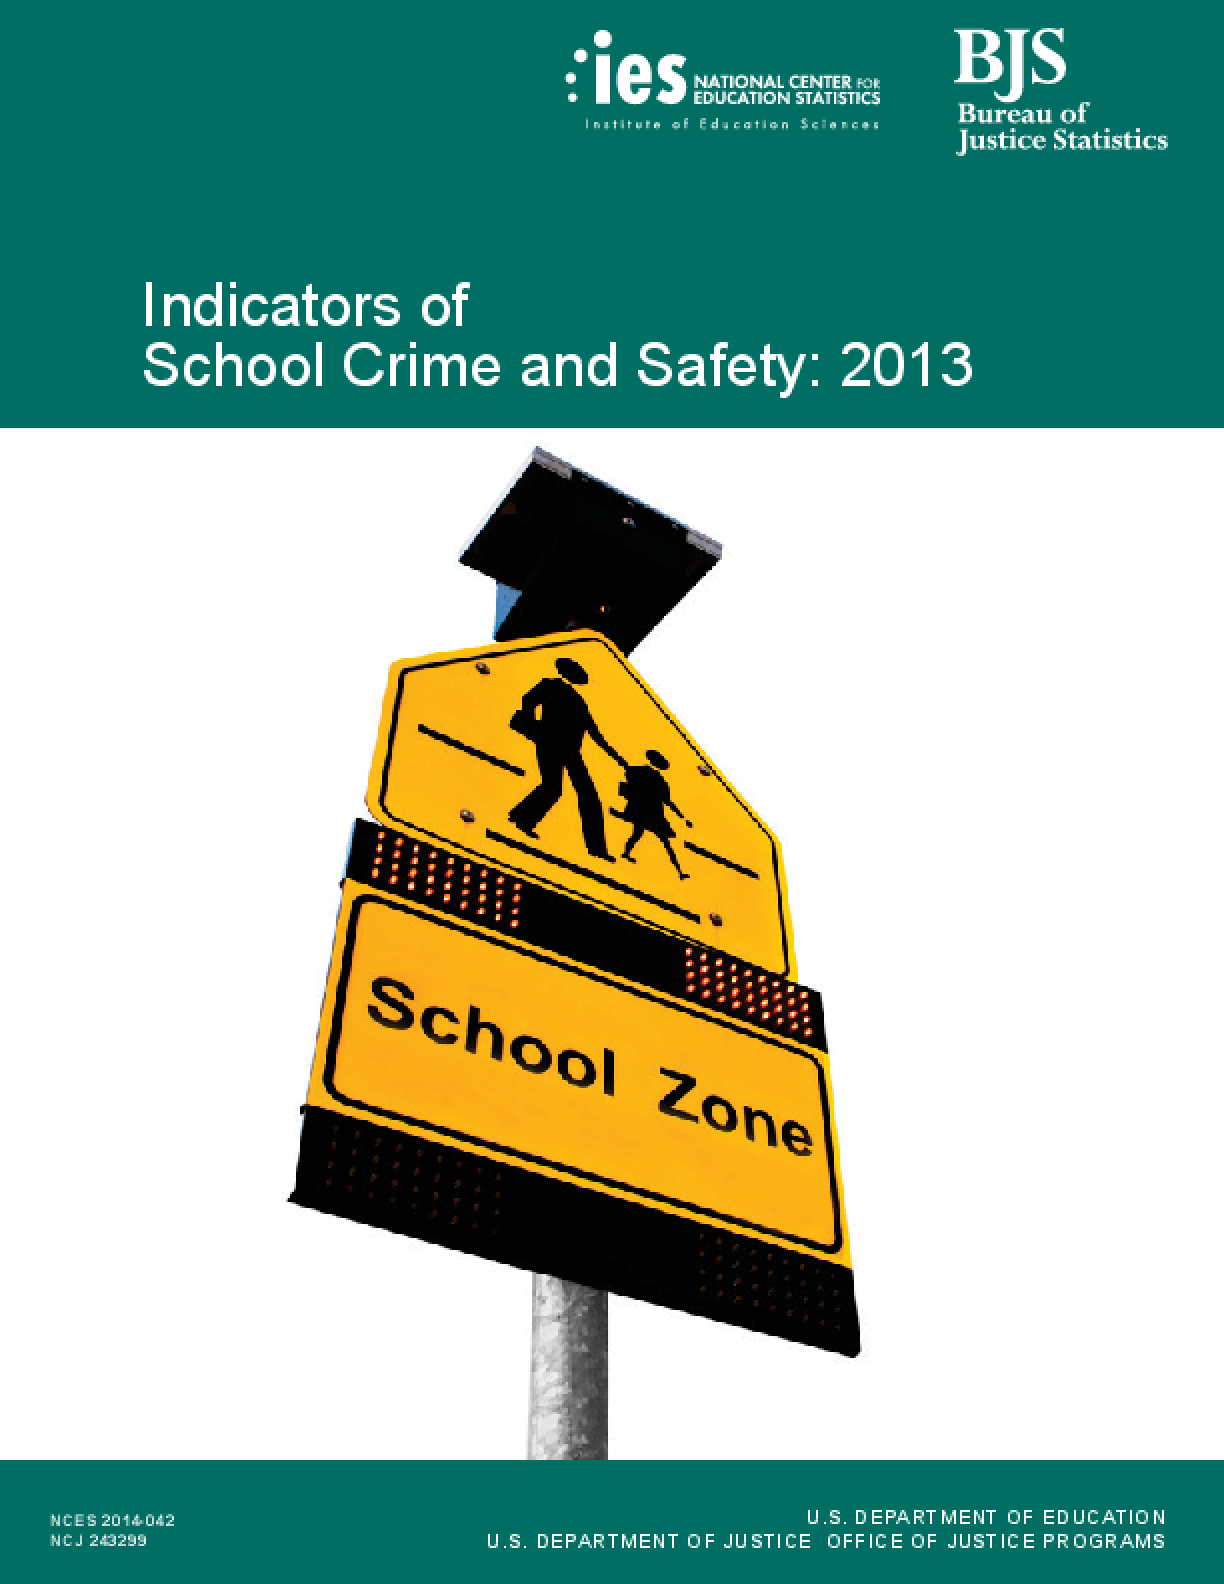 Indicators of School Crime and Safety: 2013